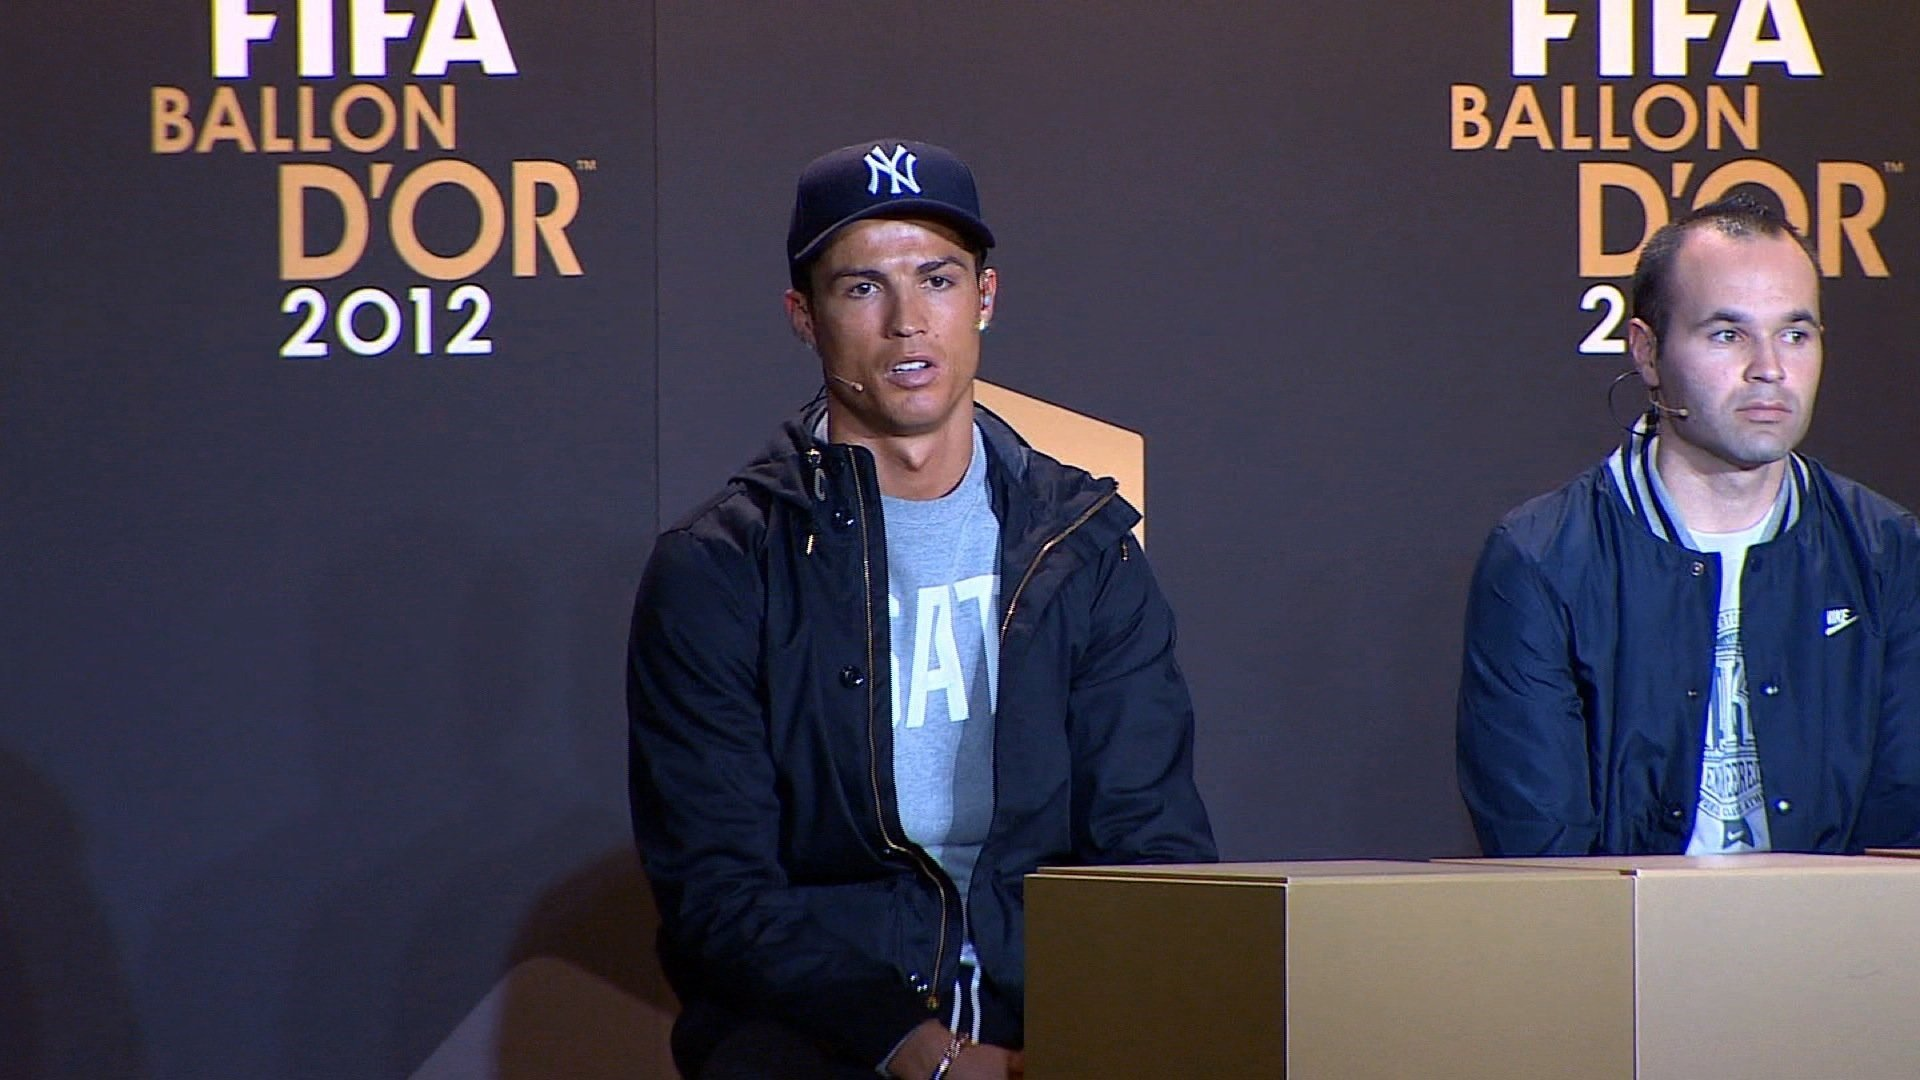 Cristiano Ronaldo wins his fourth Ballon d'Or award